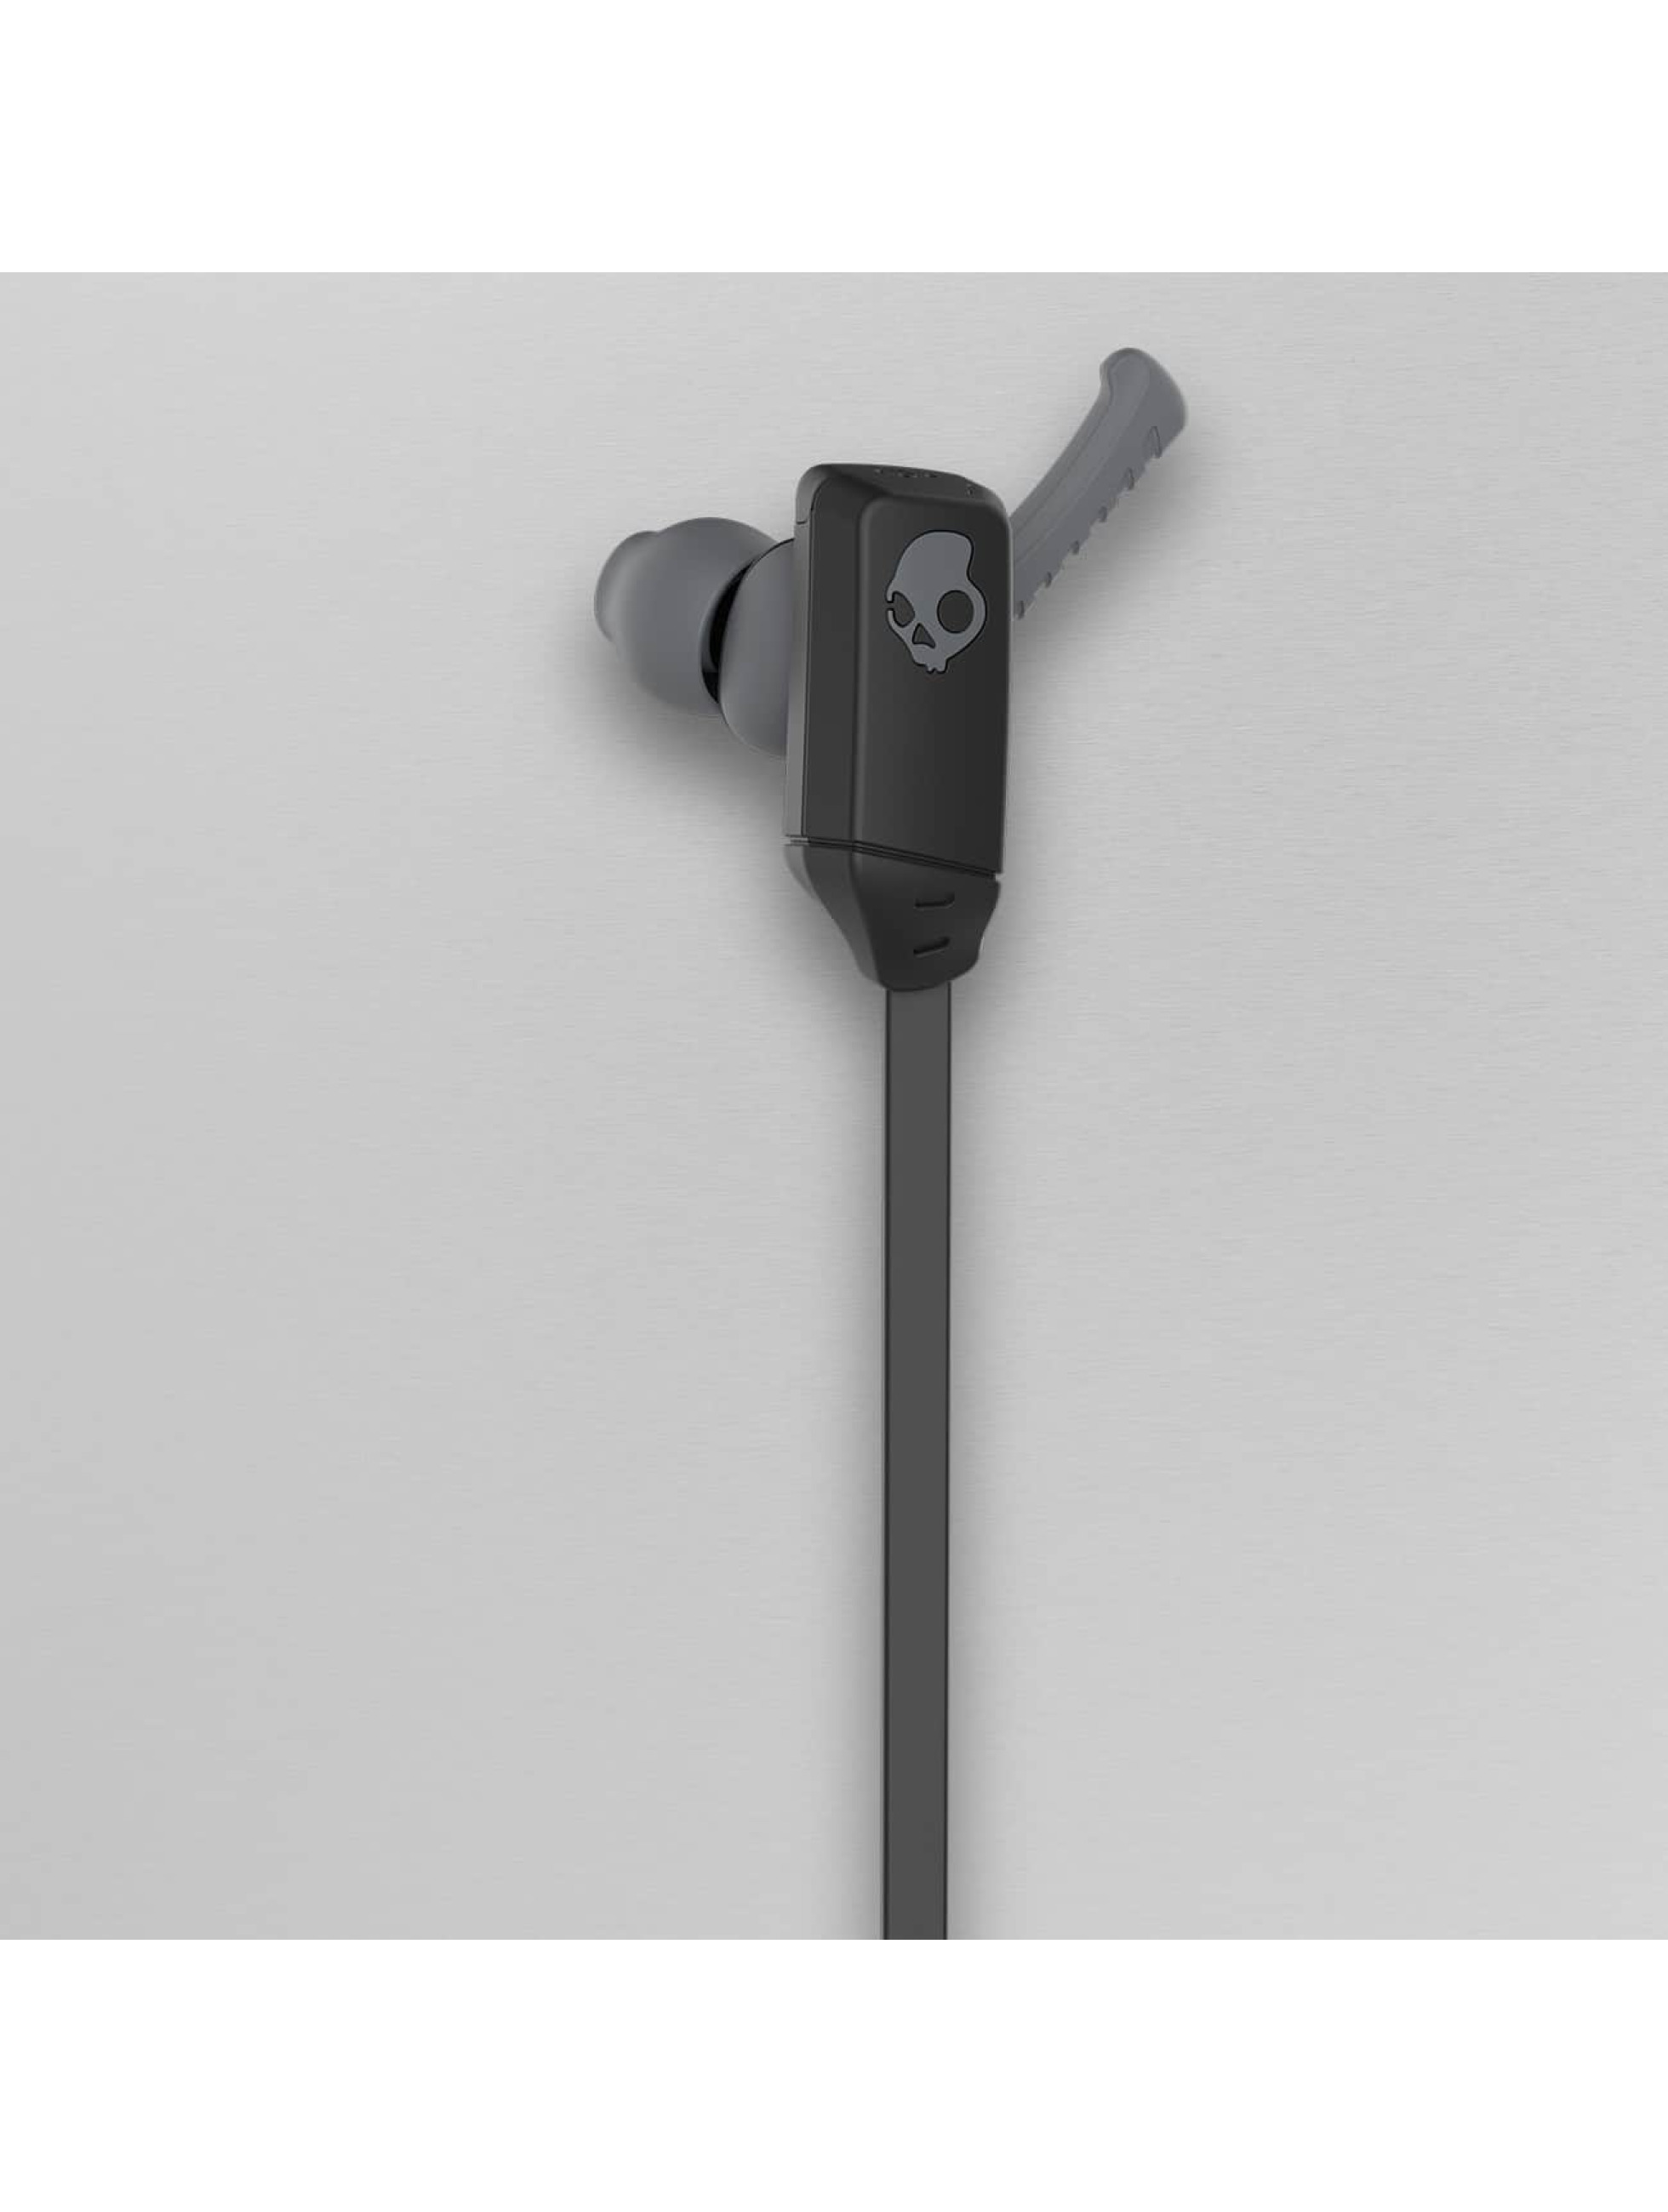 Skullcandy Sluchátka XT Free Wireless èierna